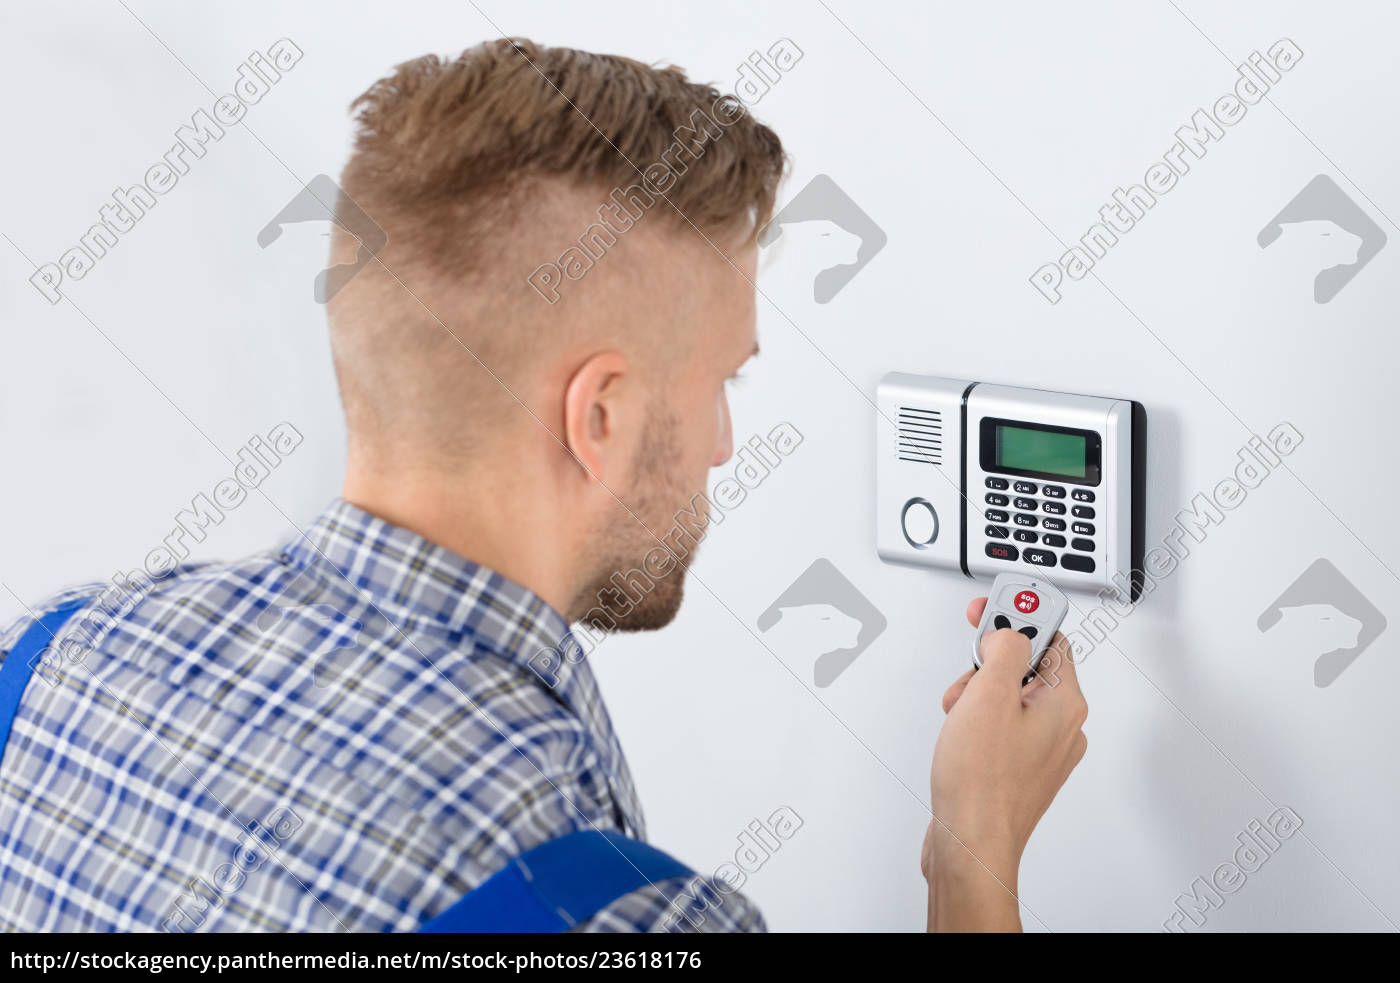 repairman, using, remote, to, operate, security - 23618176